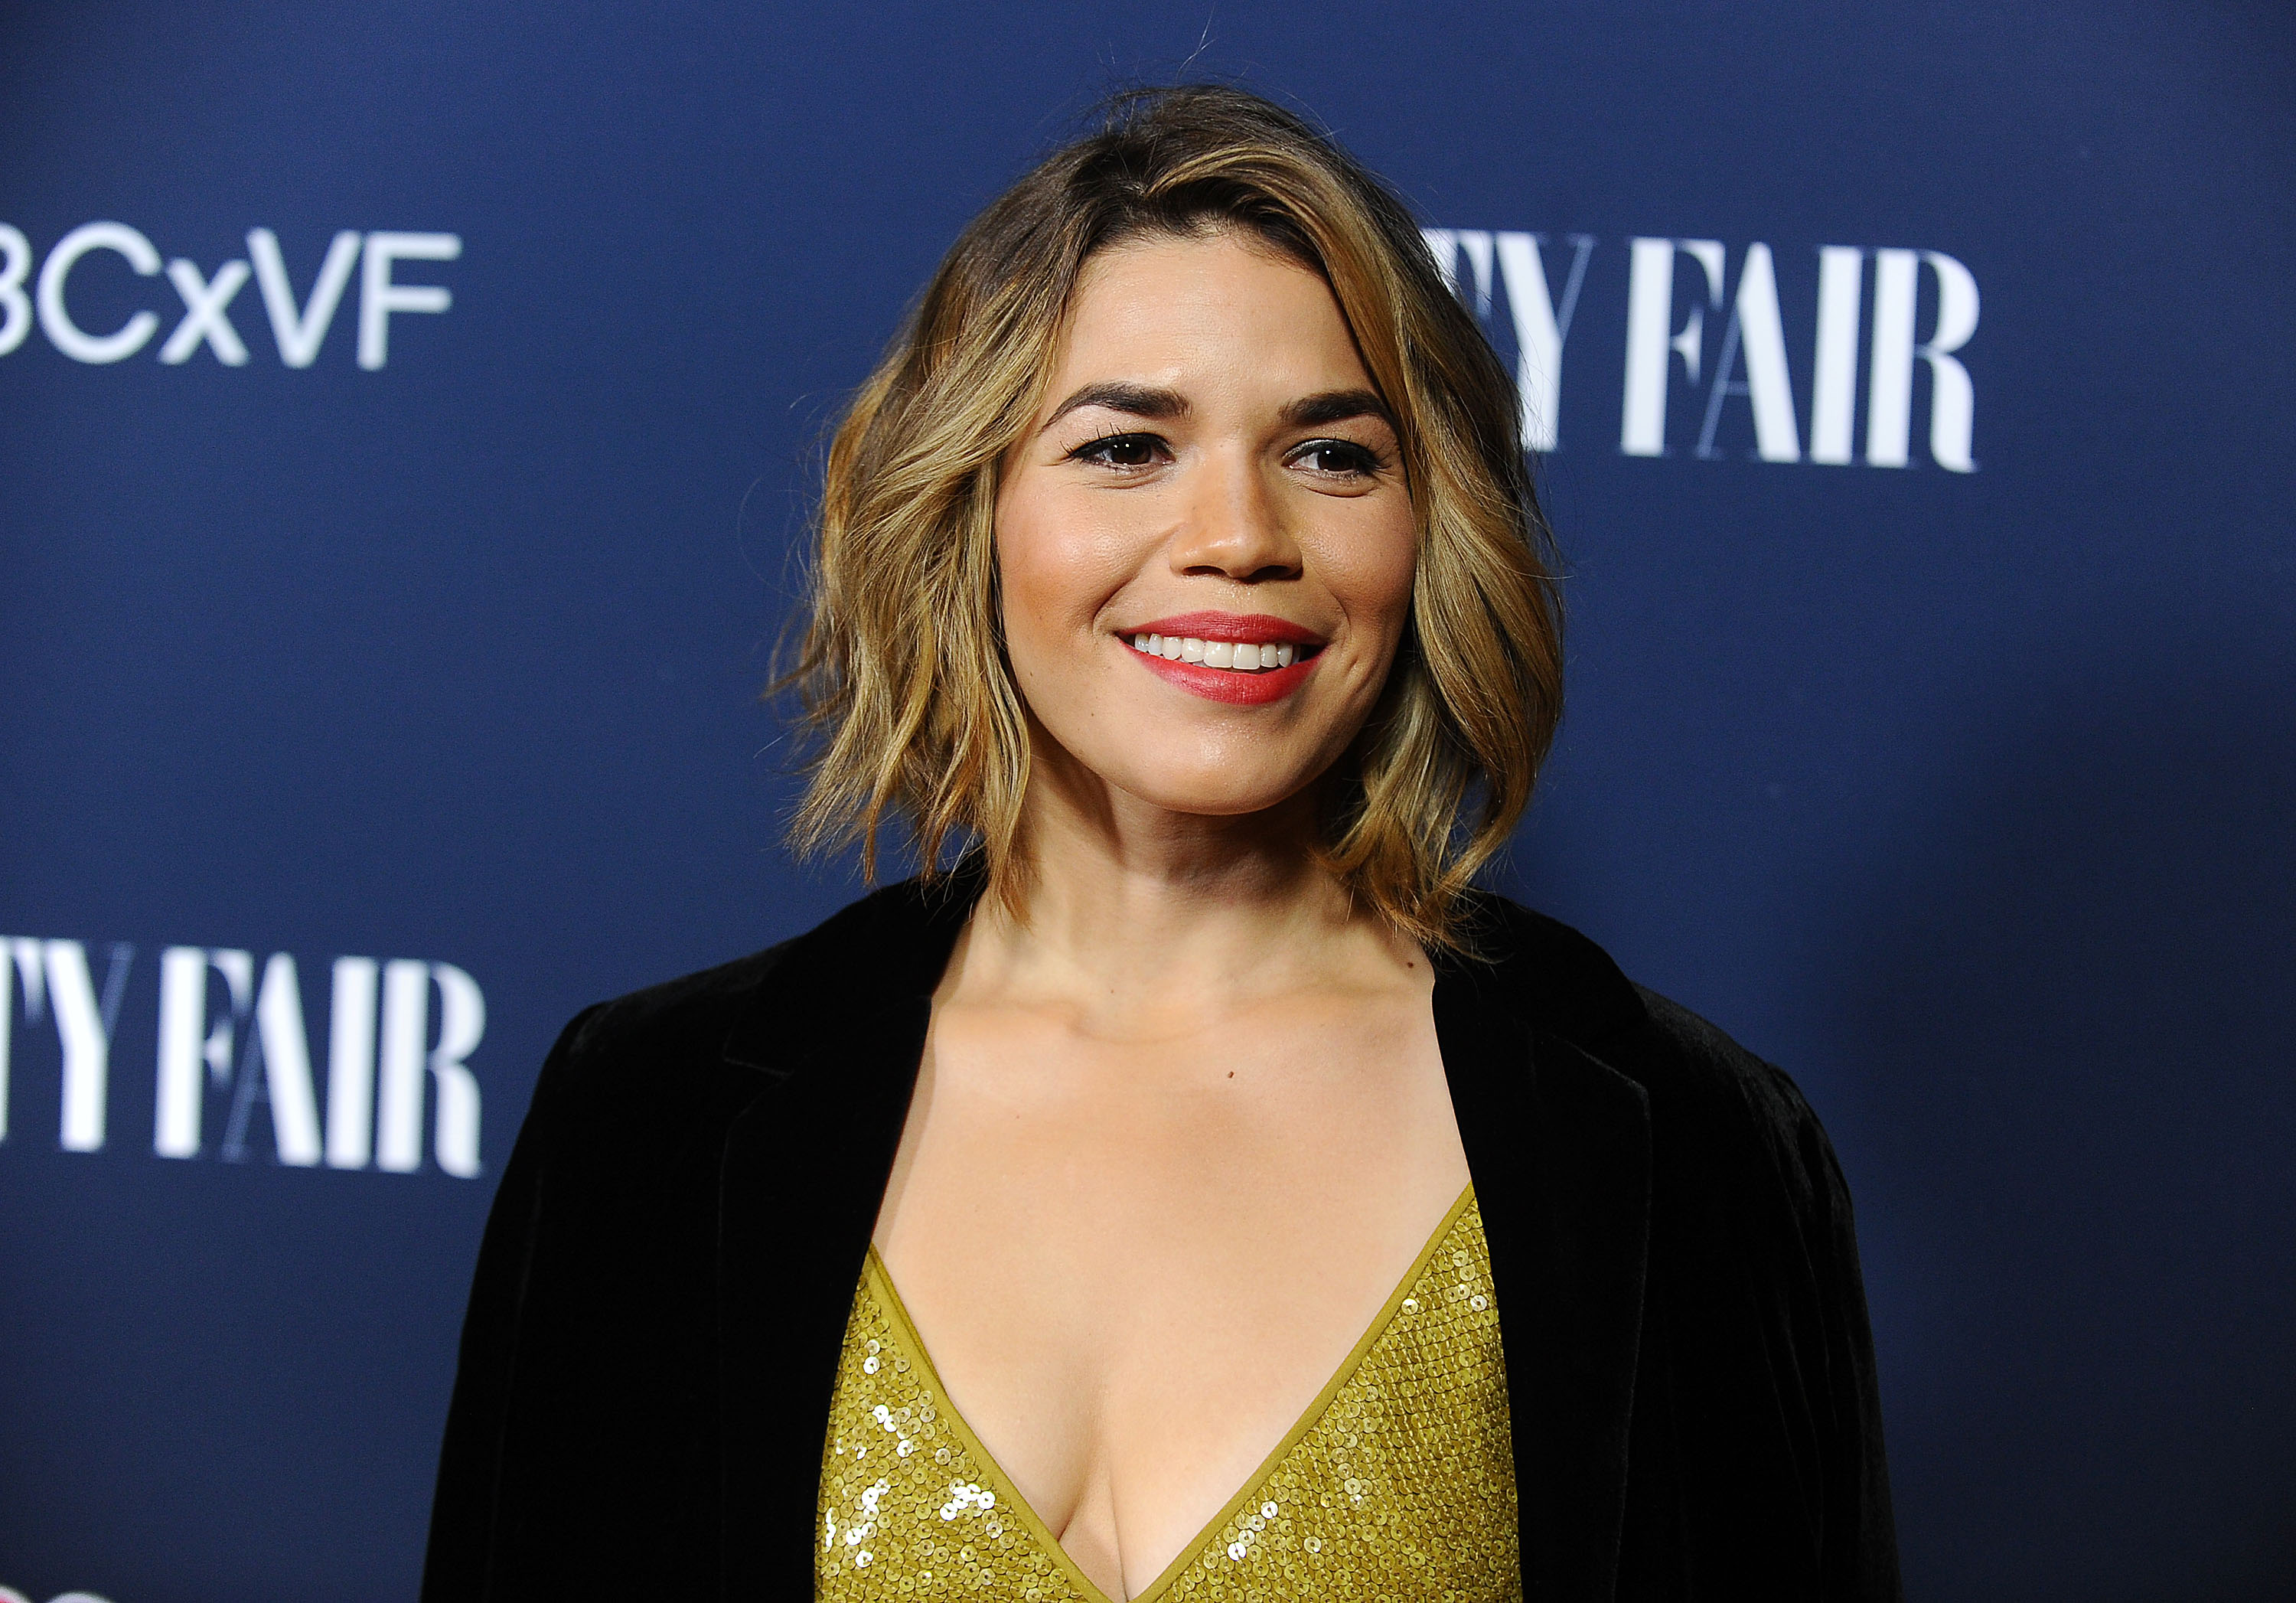 America Ferrera's red carpet dress is fit for a ray of sequined sunshine